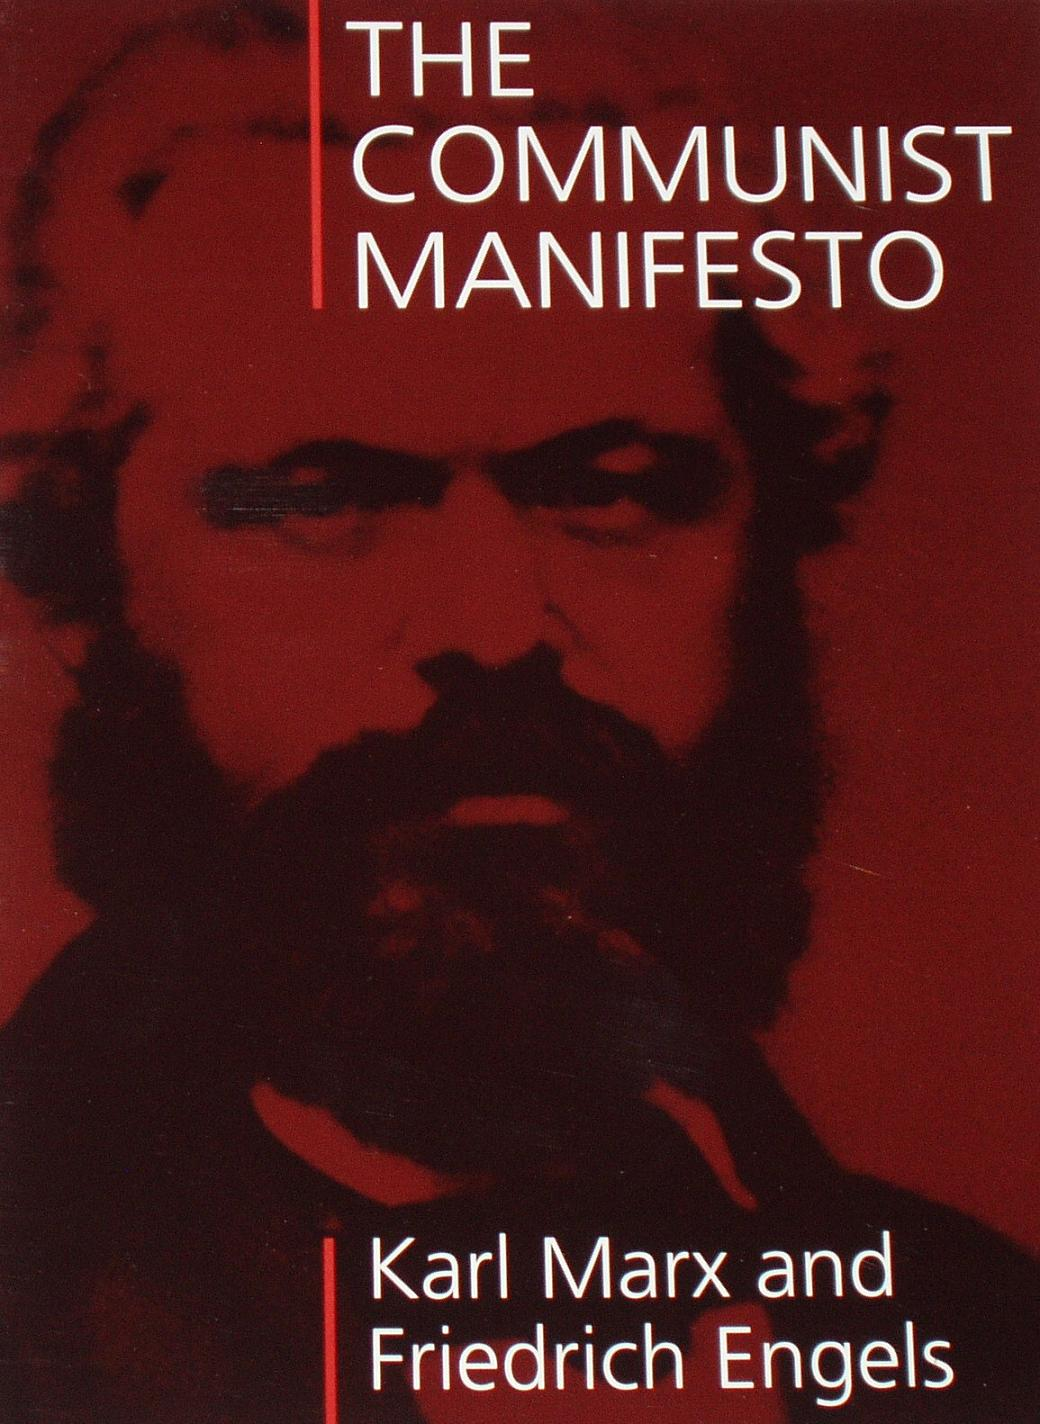 an analysis of communism in the manifesto of the communist party by karl marx The preface to that edition was written by marx and myself manifesto of the communist party, by karl marx and frederick in the final analysis.